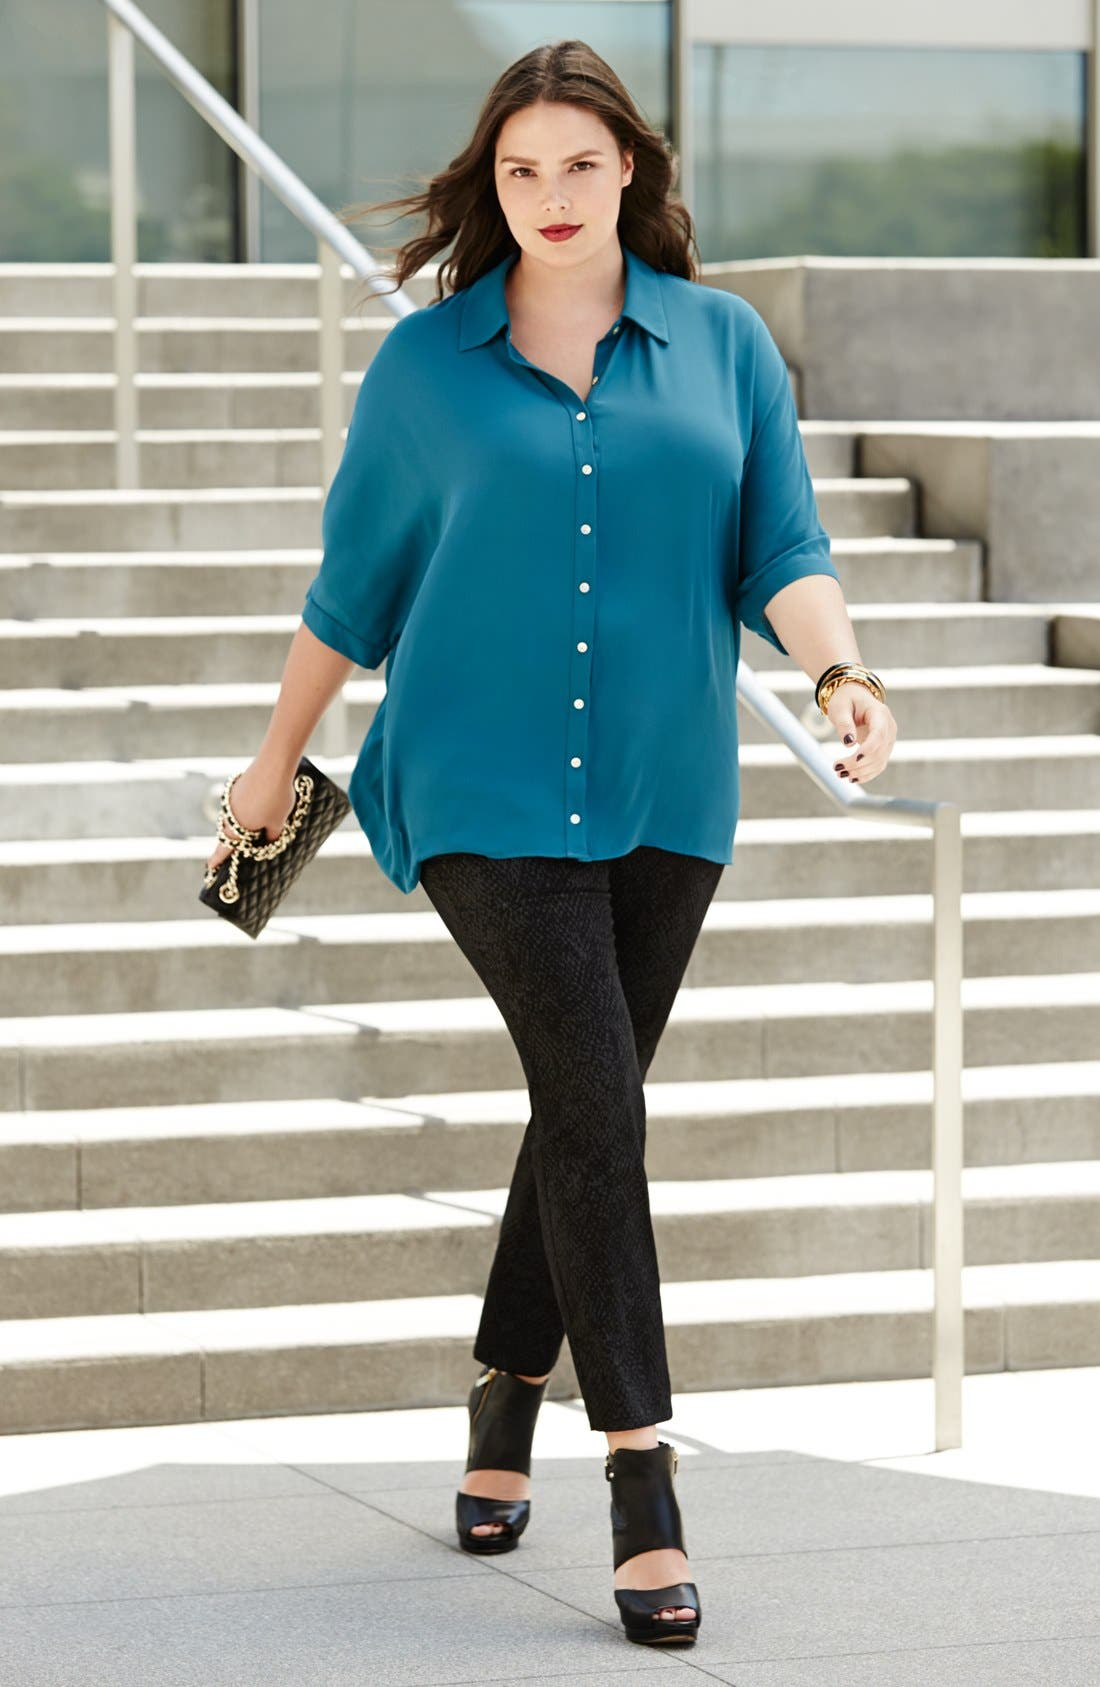 Alternate Image 1 Selected - Bellatrix Tunic Top & NYDJ Stretch Skinny Jeans (Plus Size)